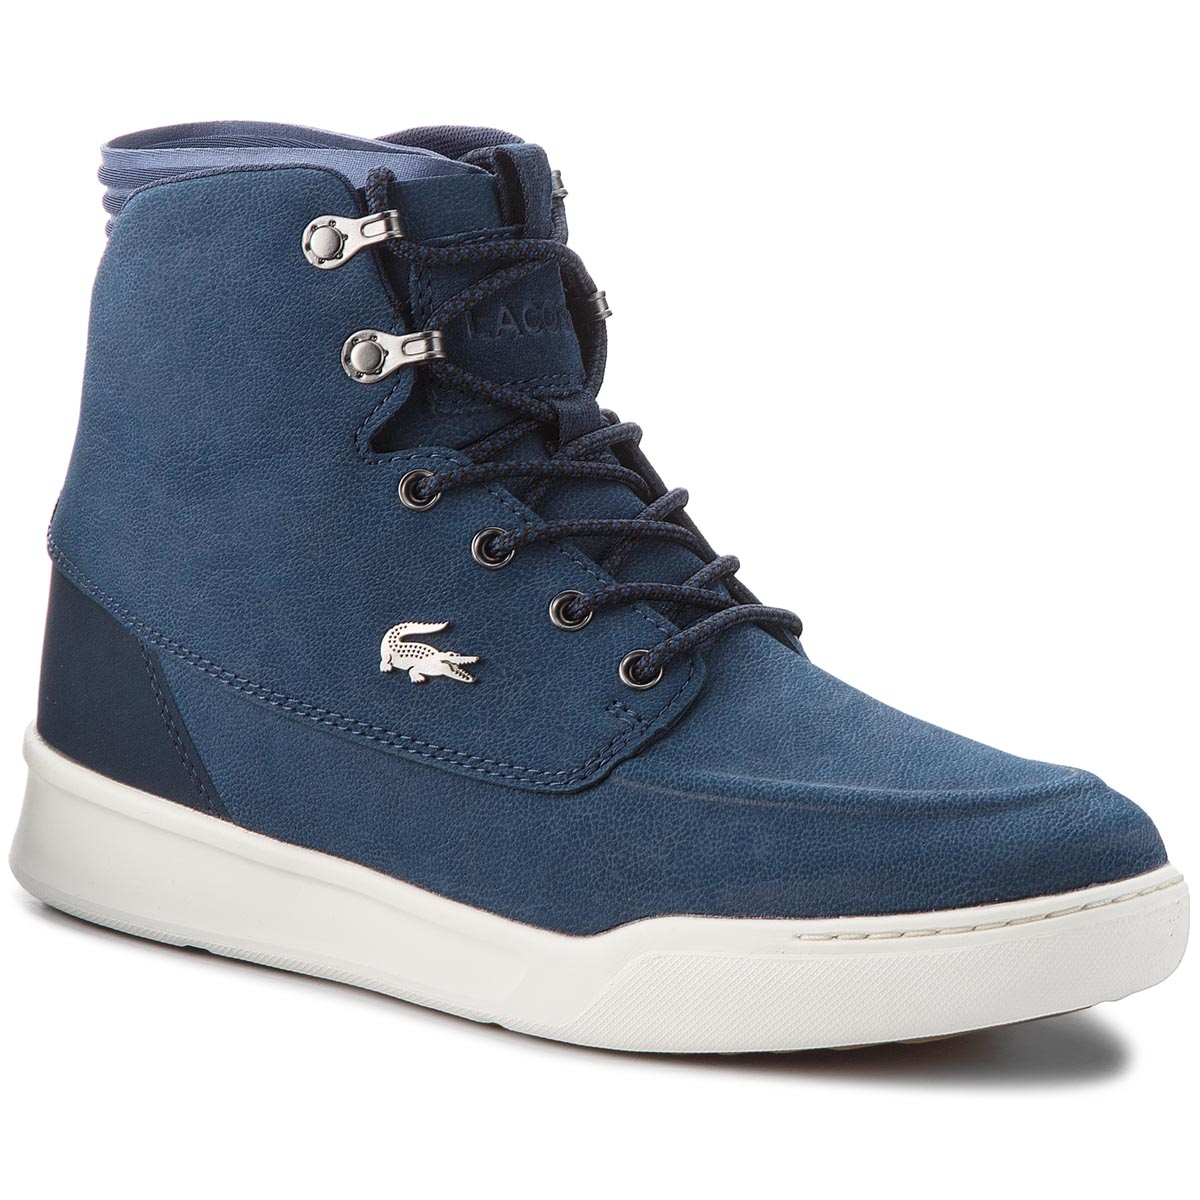 Sneakers LACOSTE - Explorateur Techhi3181 Cam 7-38CAM0034ND1 Nvy/Dk Blu